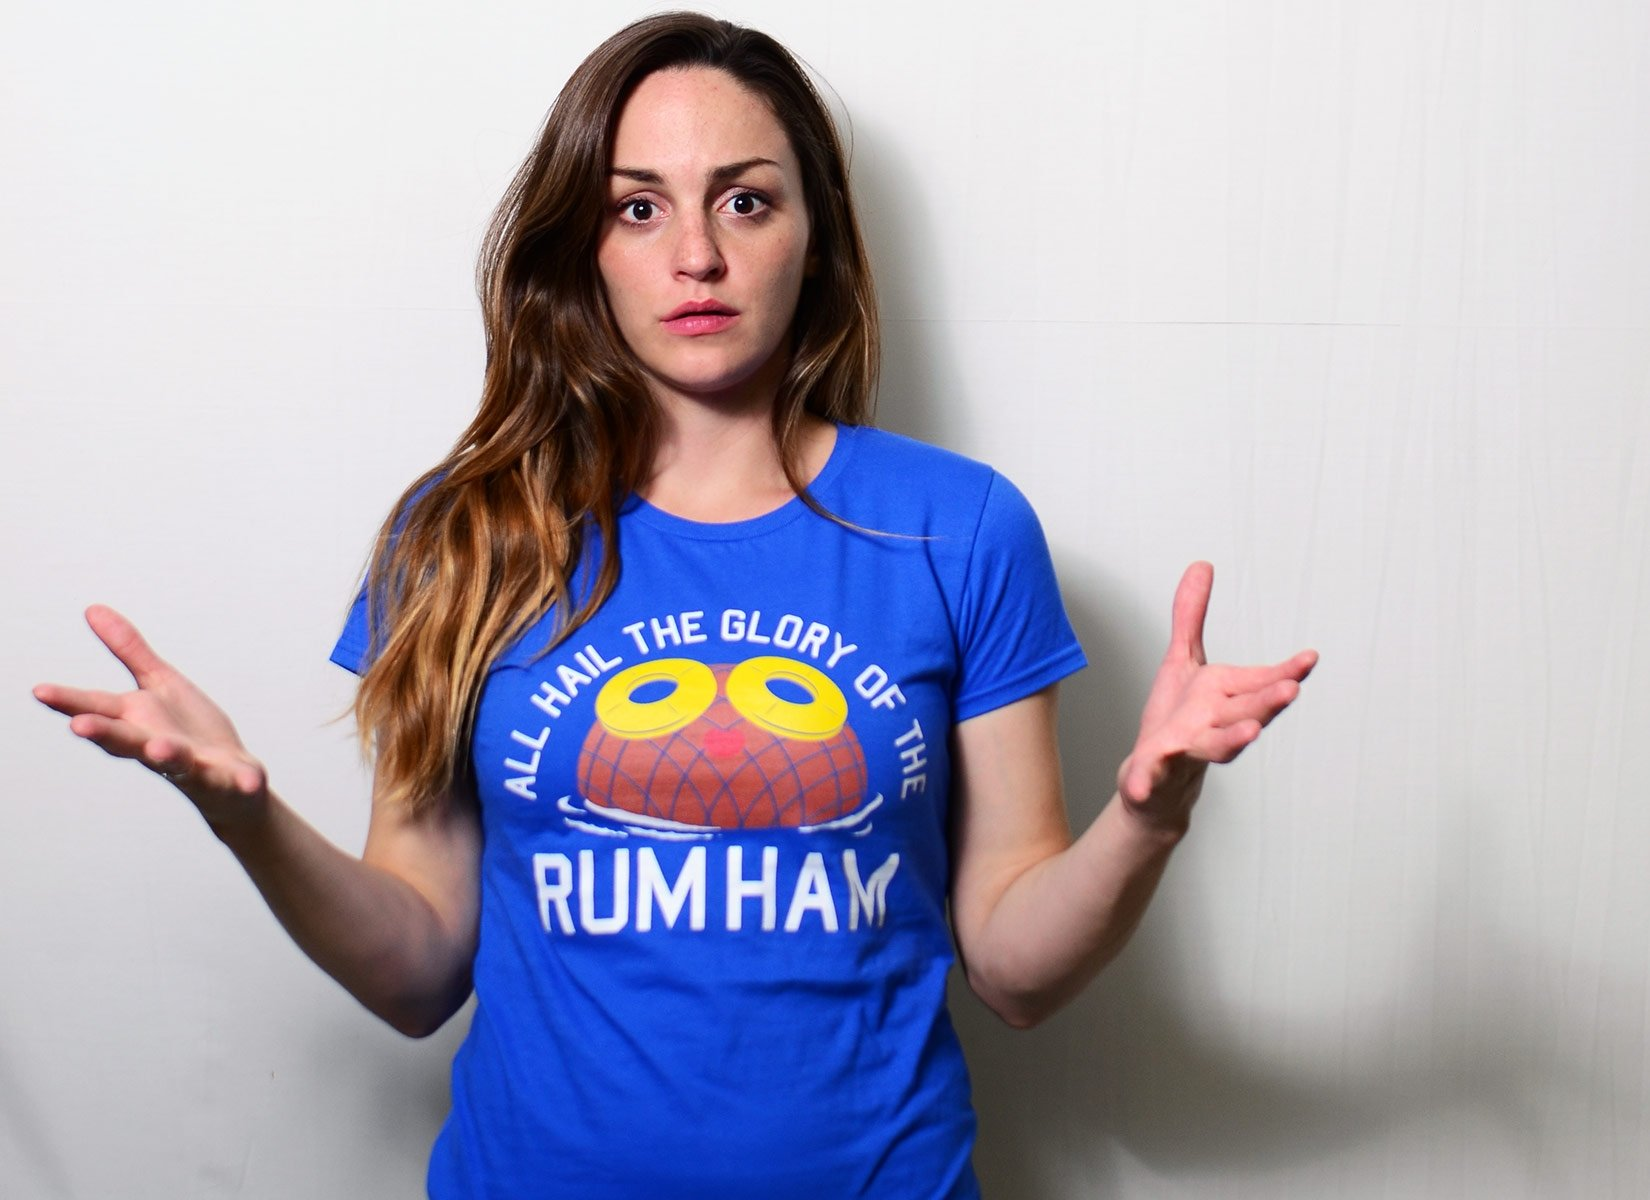 Rum Ham on Womens T-Shirt